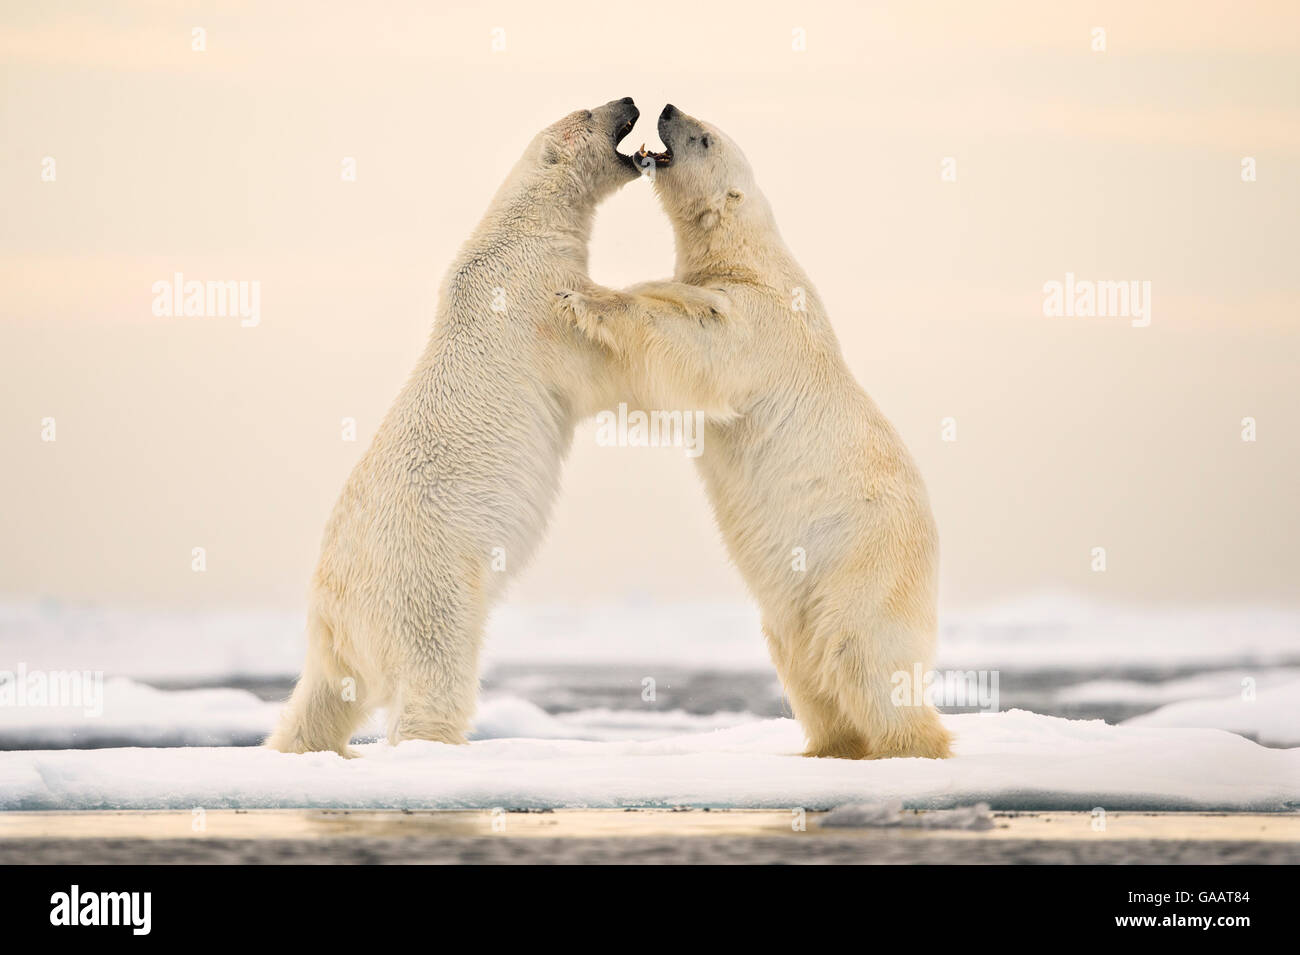 Polar bears (Ursus maritimus) courting on ocean ice north of Spitsbergen, Svalbard, Norway, July. - Stock Image